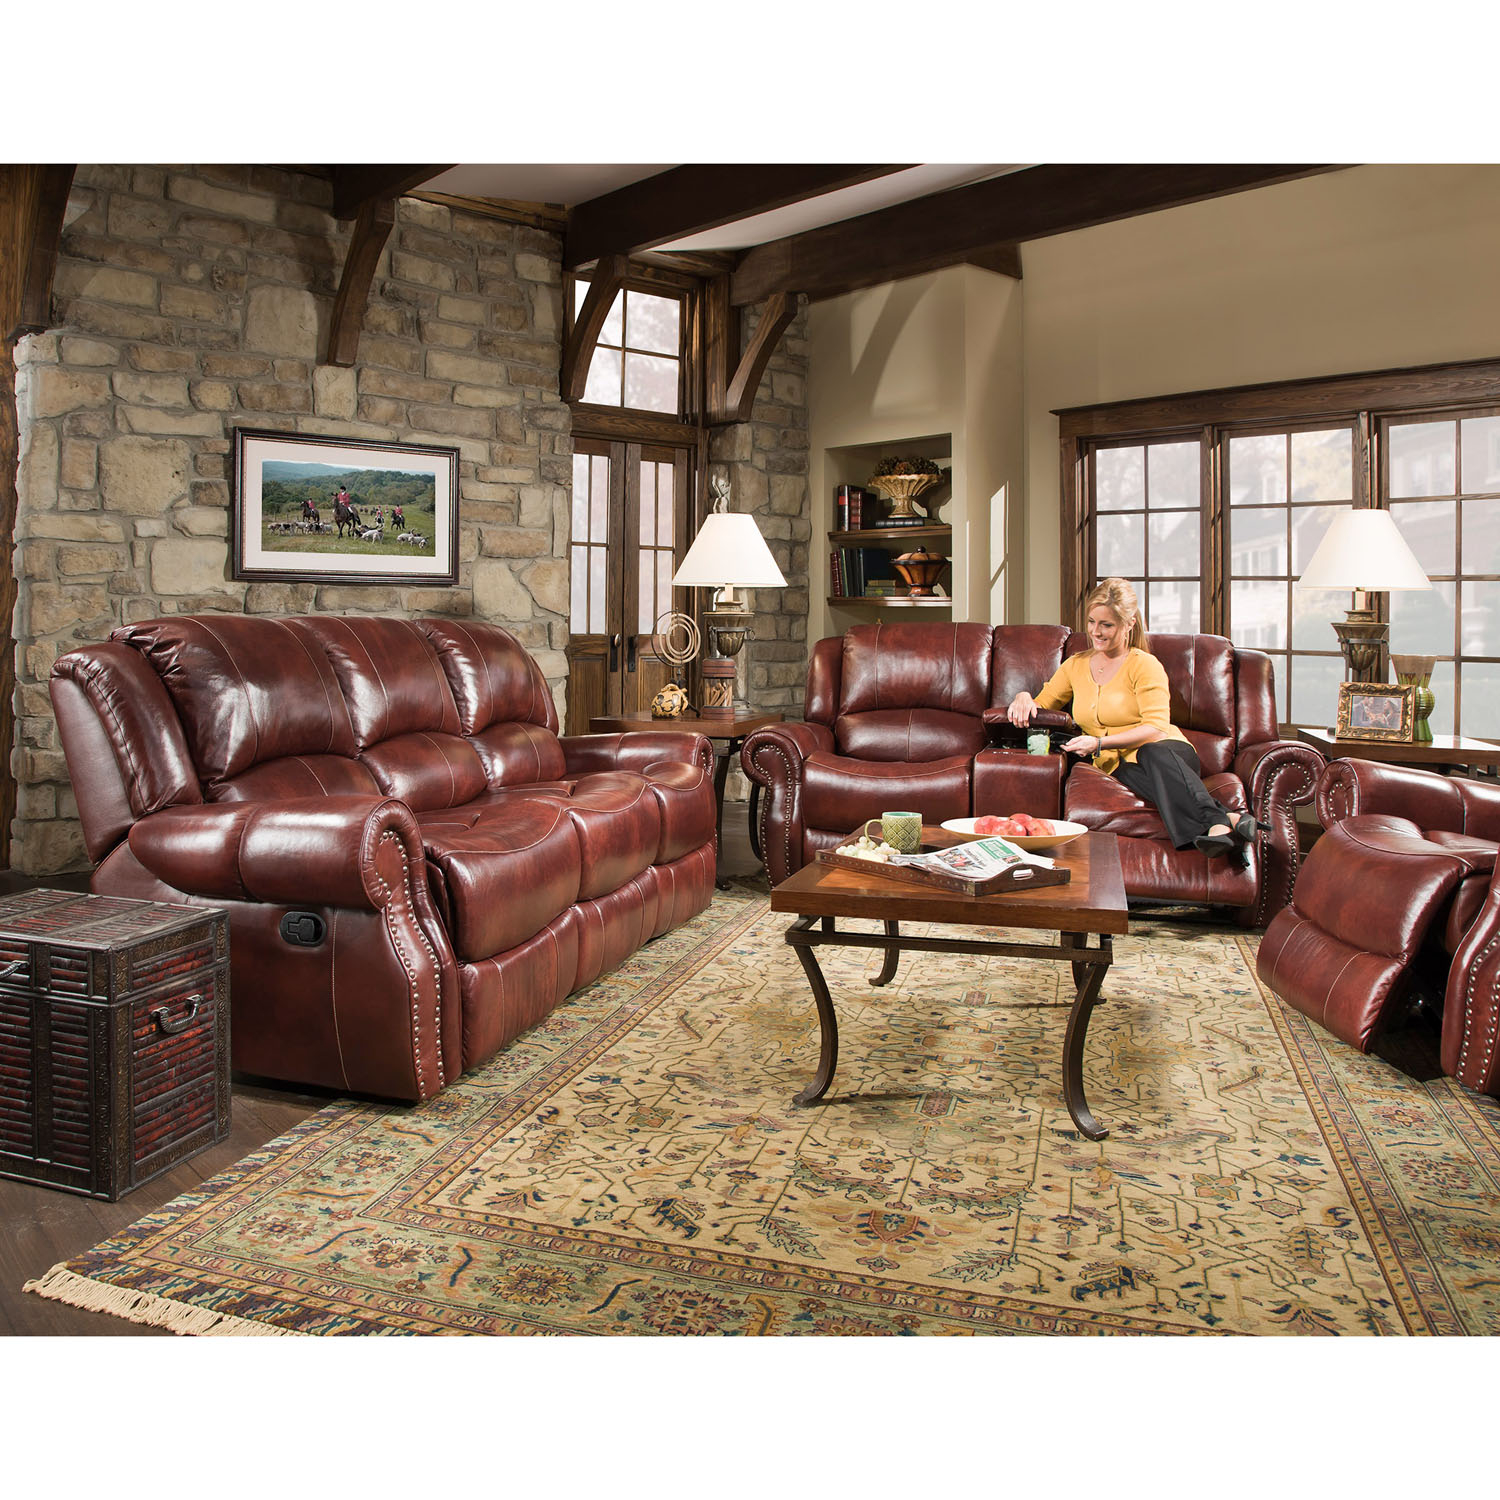 Cambridge Telluride 3 Piece Living Room Set Sofa Loveseat And Recliner with regard to 13 Clever Tricks of How to Upgrade 3 Piece Living Room Sets